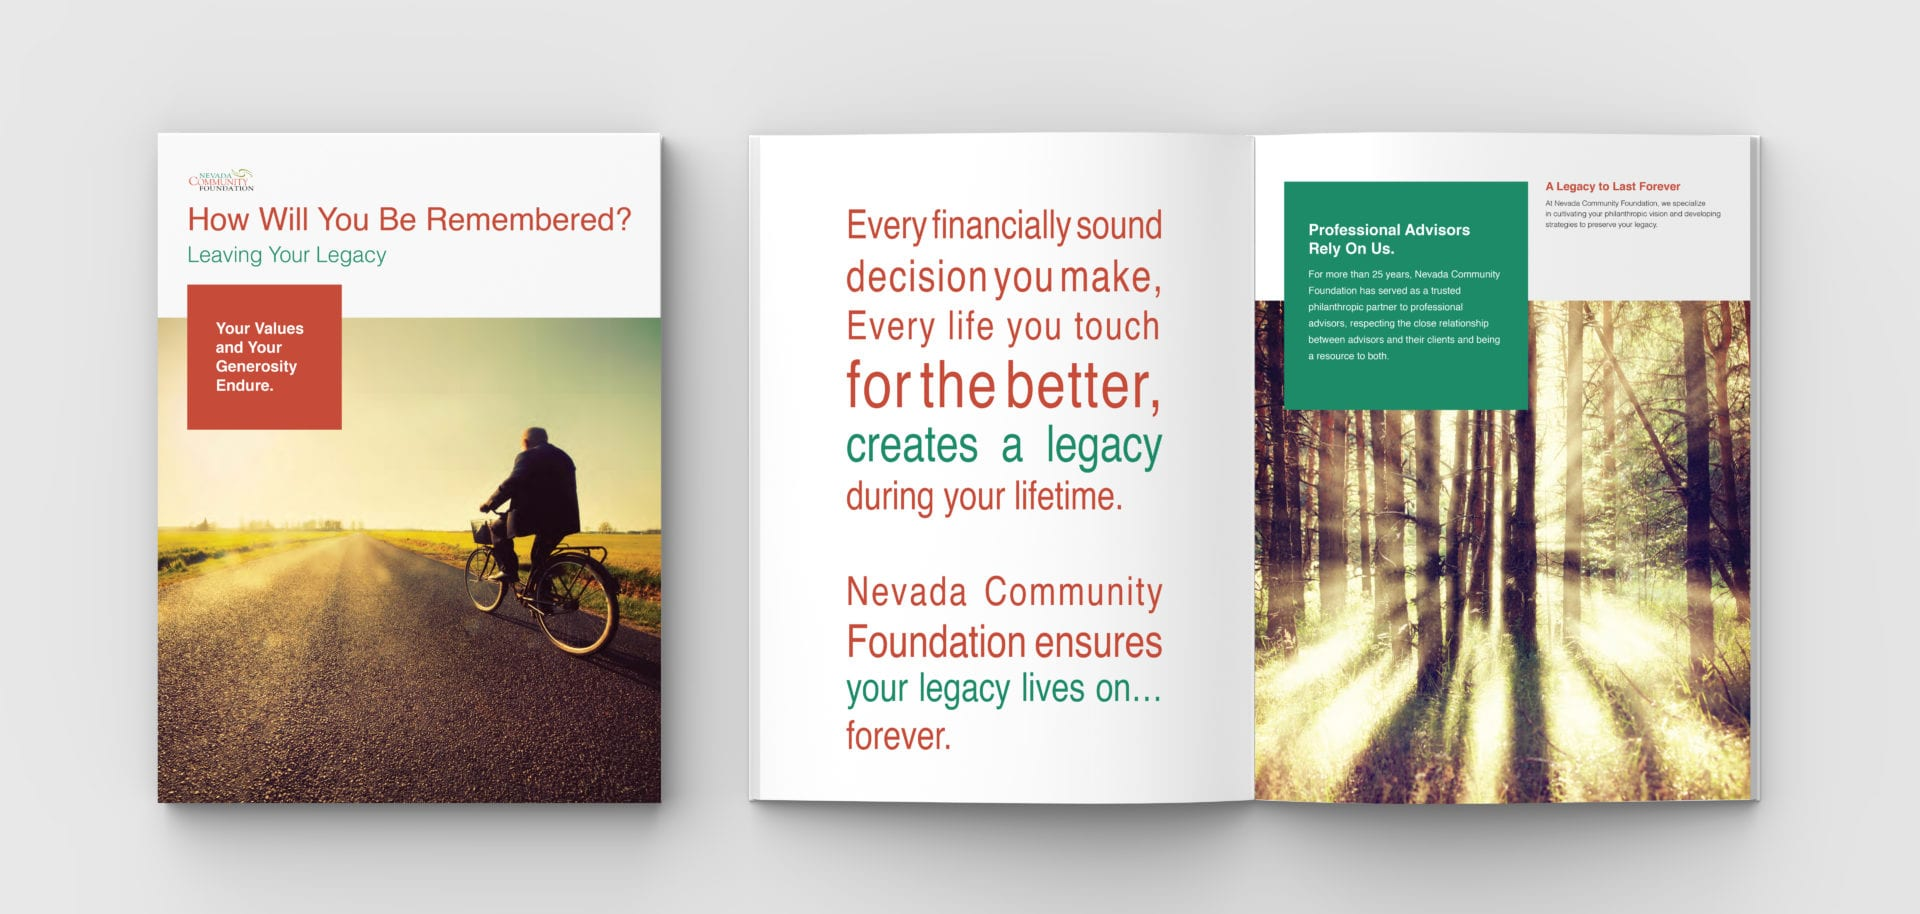 The brochure for the Nevada Community Foundation, designed by Canyon Creative